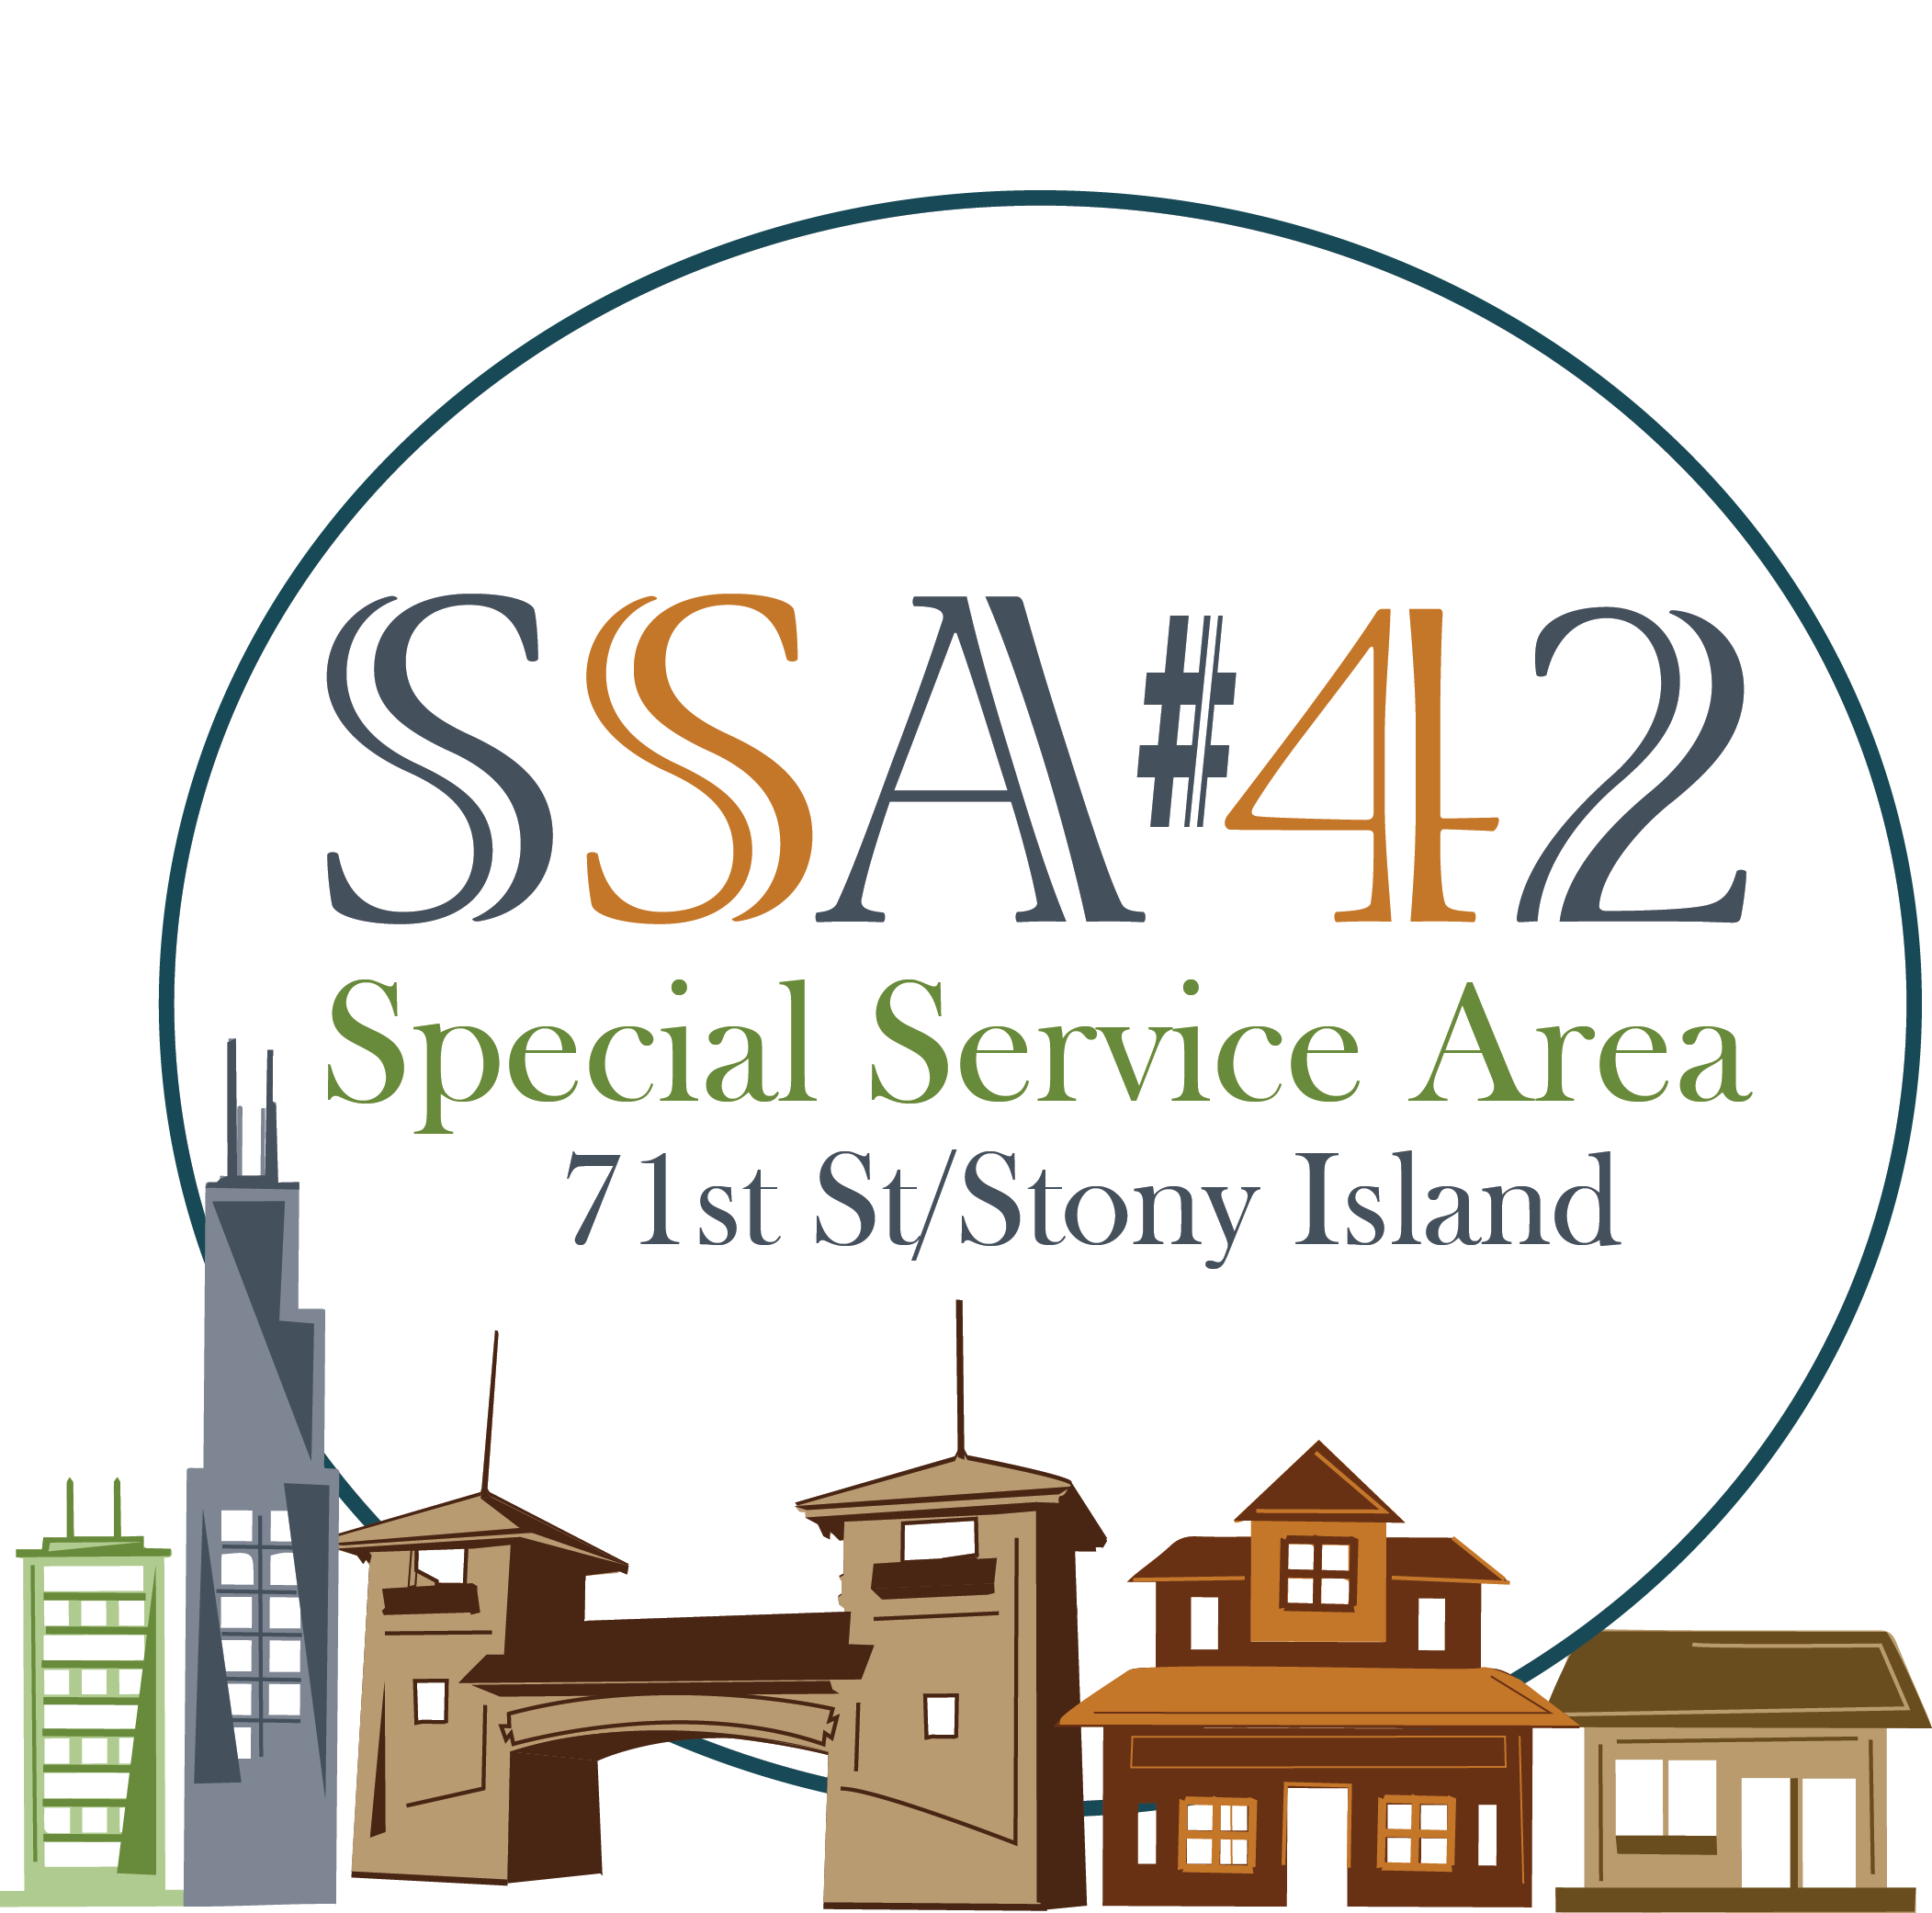 SSA 42 Final logo (1).png